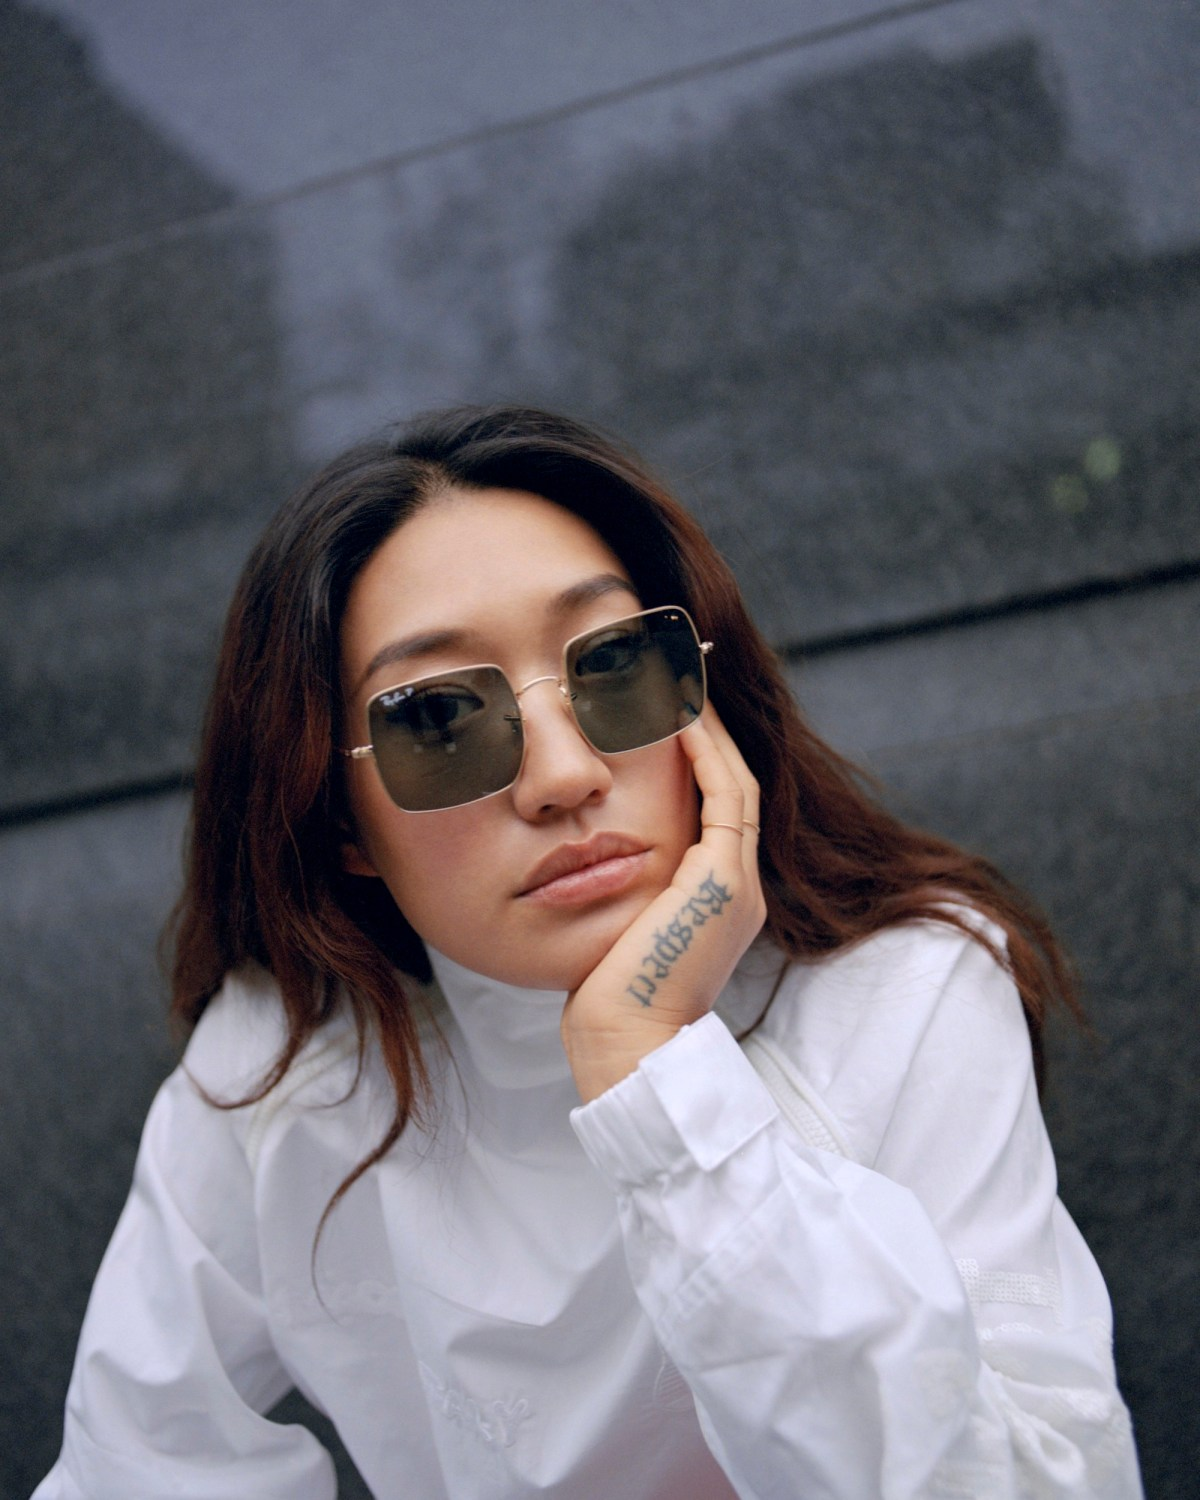 South Korean DJ Peggy Gou on the cover of Rollacoaster Spring/Summer 2019 in white shirt